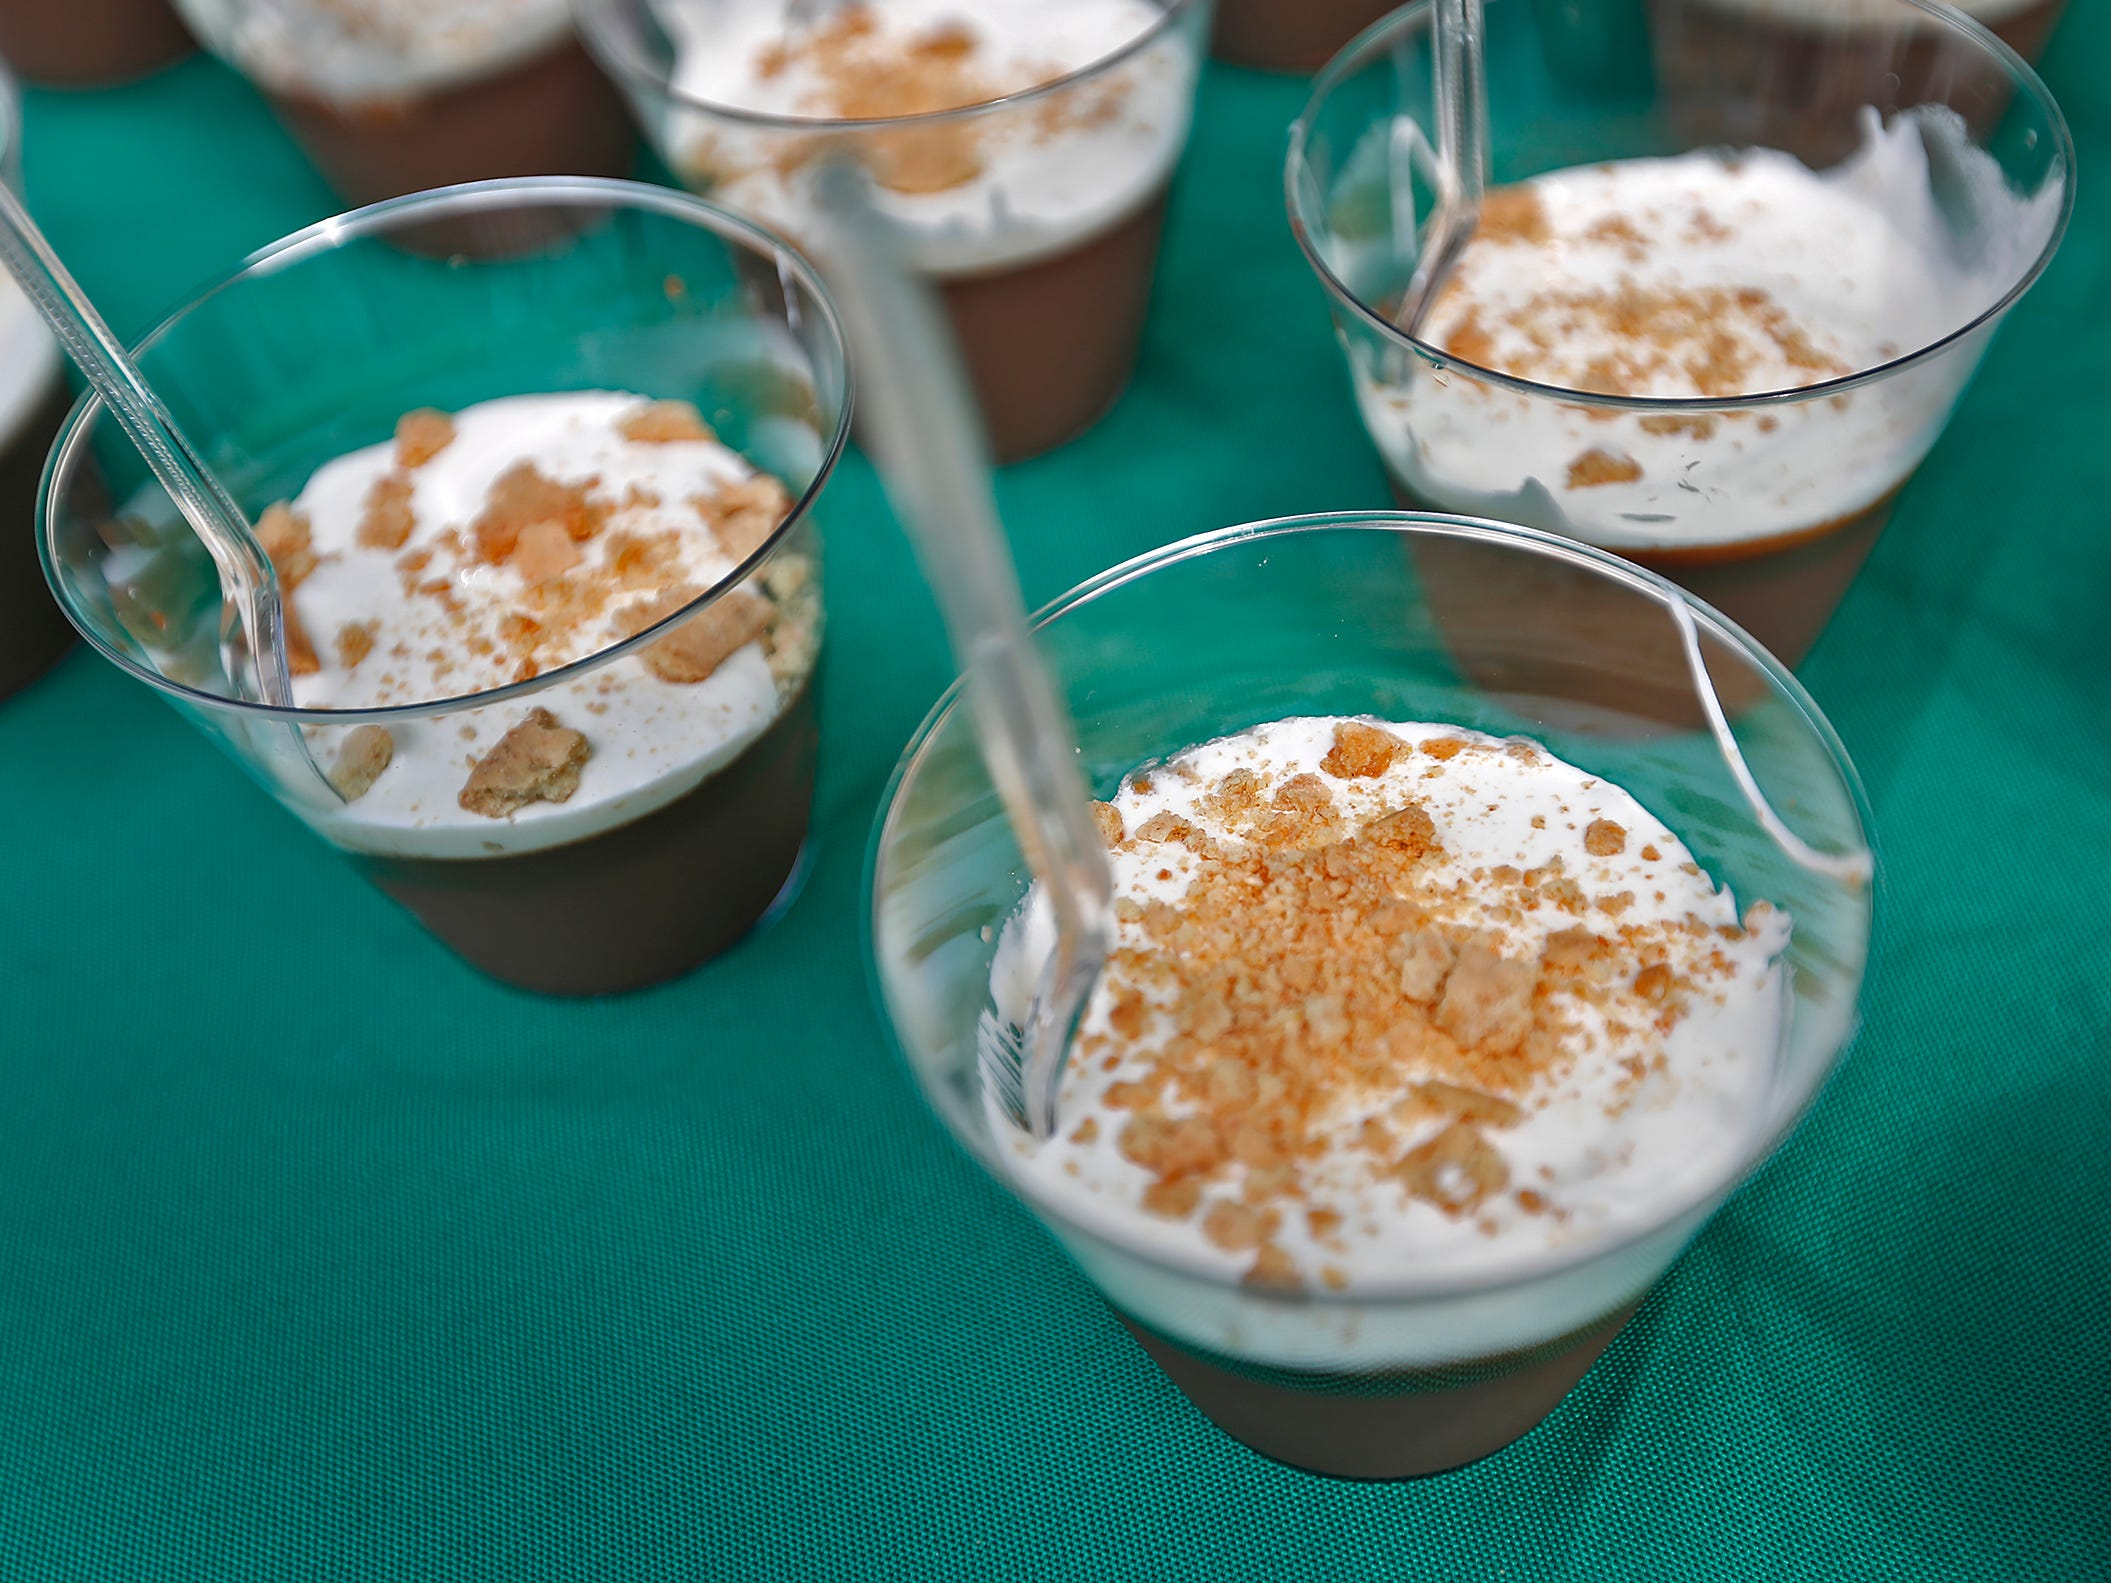 This S'mores treat is by private Chef David McMillen.  This was one of the s'mores offerings during the Girl Scouts' S'mores on the Circle event, Friday, Aug. 10, 2018.  The event celebrated National S'mores Day.  Seven local chefs were featured, creating gourmet s'mores treats, sold as a fundraiser.  Proceeds go for financial assistance for Girl Scouts, helping all girls who want to be a girl scout participating in hands-on adventures and STEM activities.